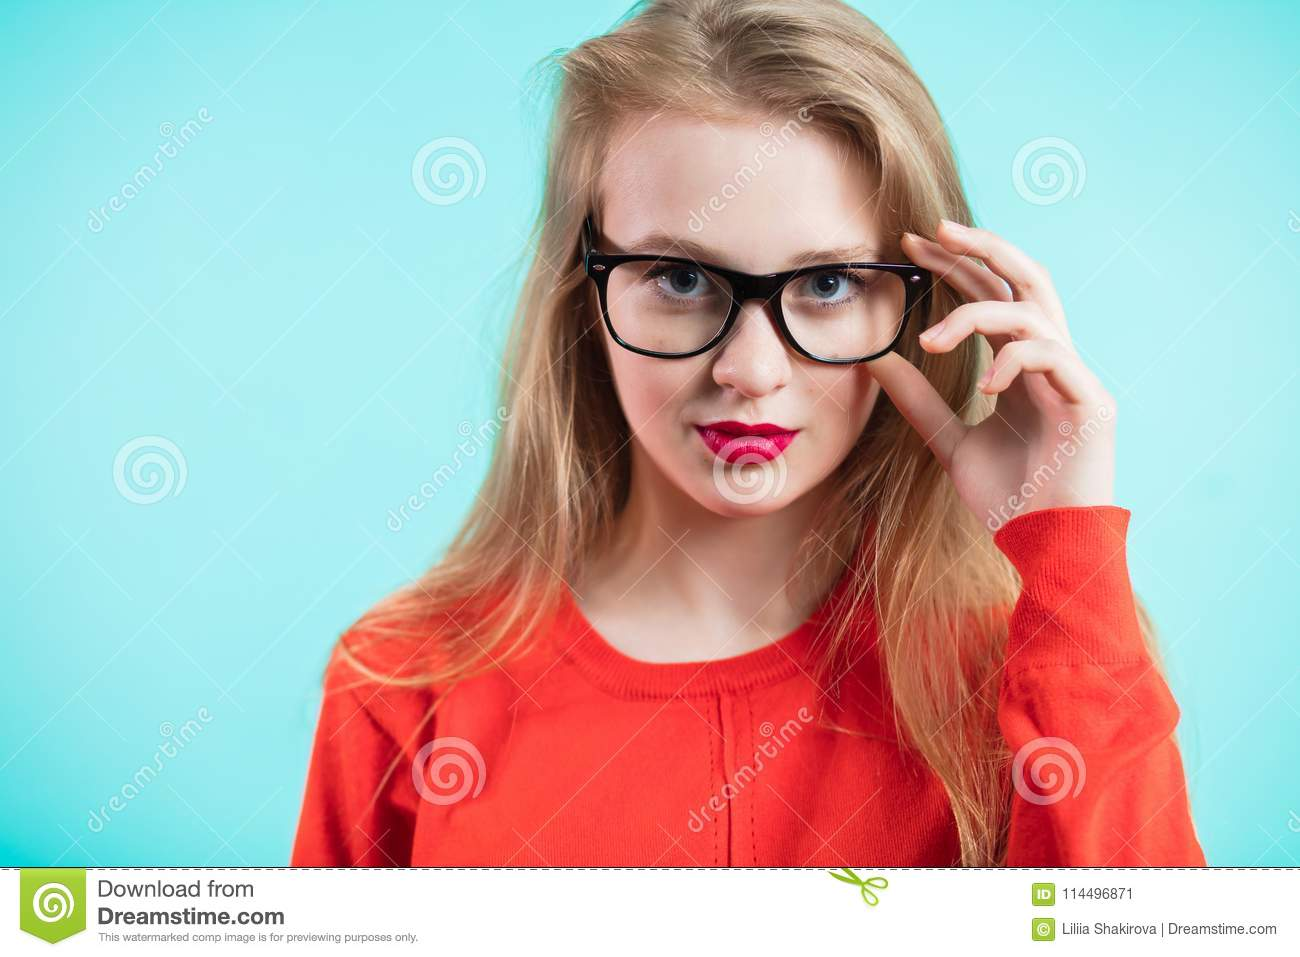 f70614810110 Beautiful girl red lips glasses black frames looking camera blue background  health good vision ophthalmology image